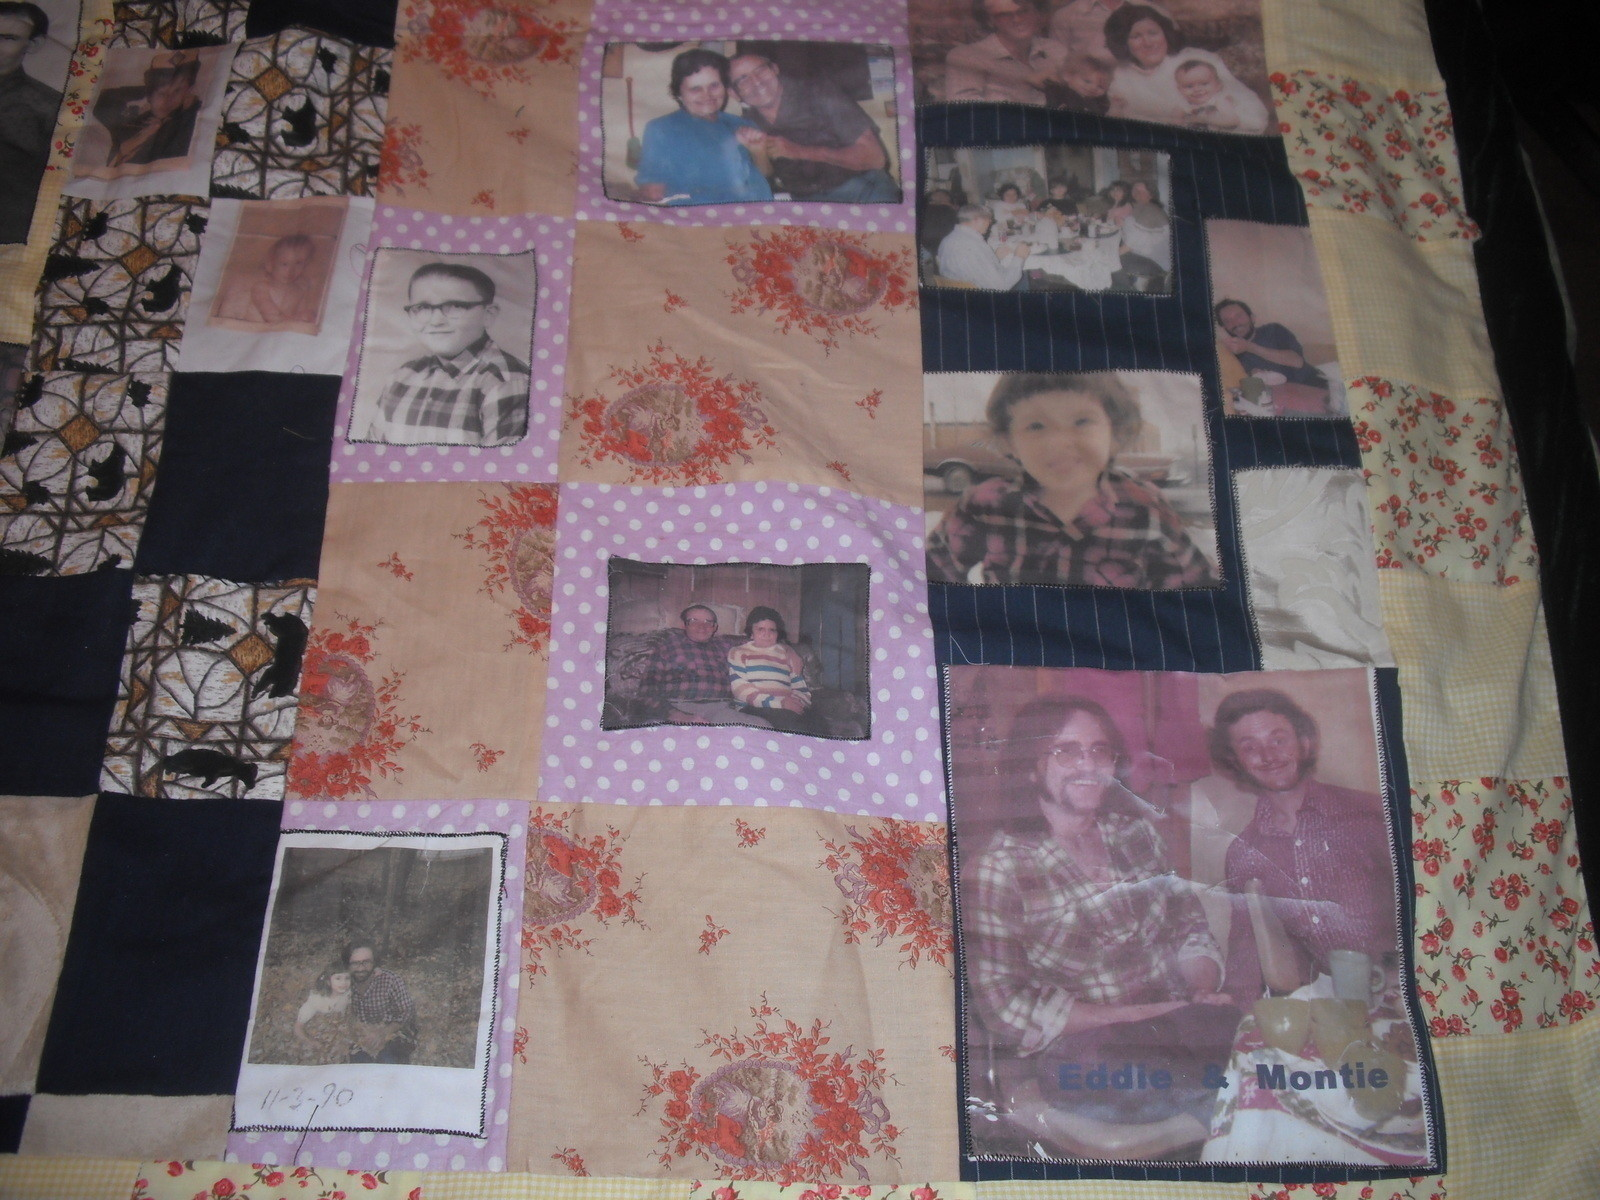 Family Memory Blanket  A Patchwork Quilt  Art Photography and Computer Art on Cut Out  Keep